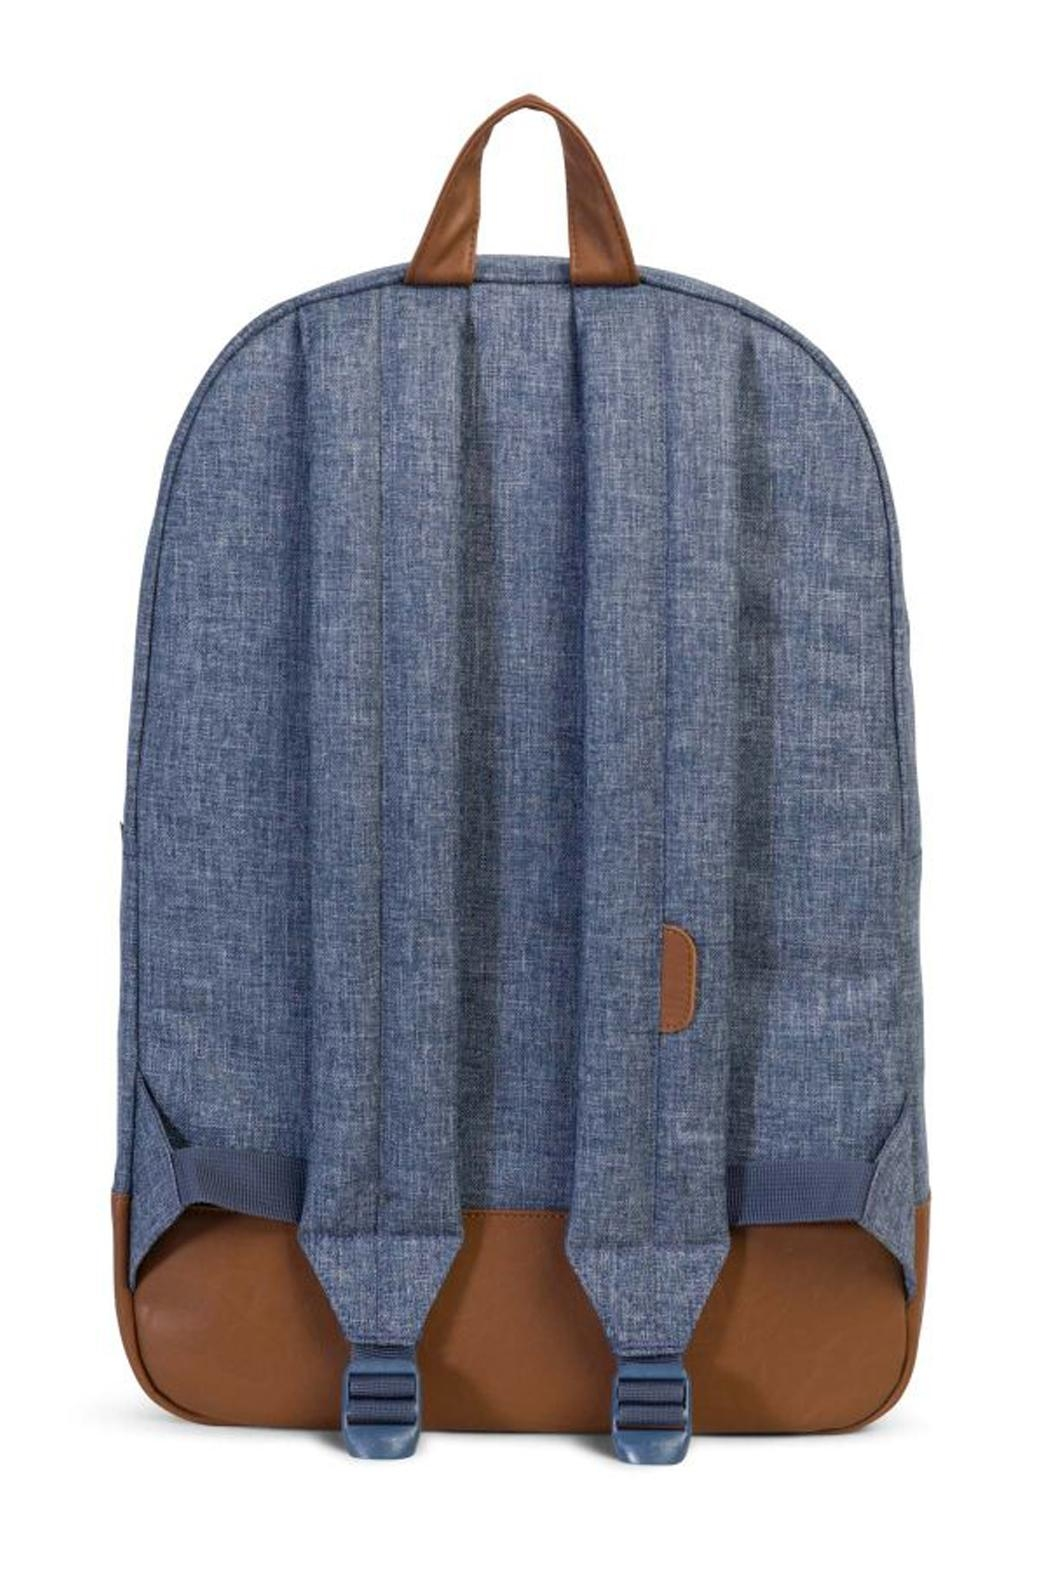 Herschel Supply Co. Heritage Backpack - Back Cropped Image